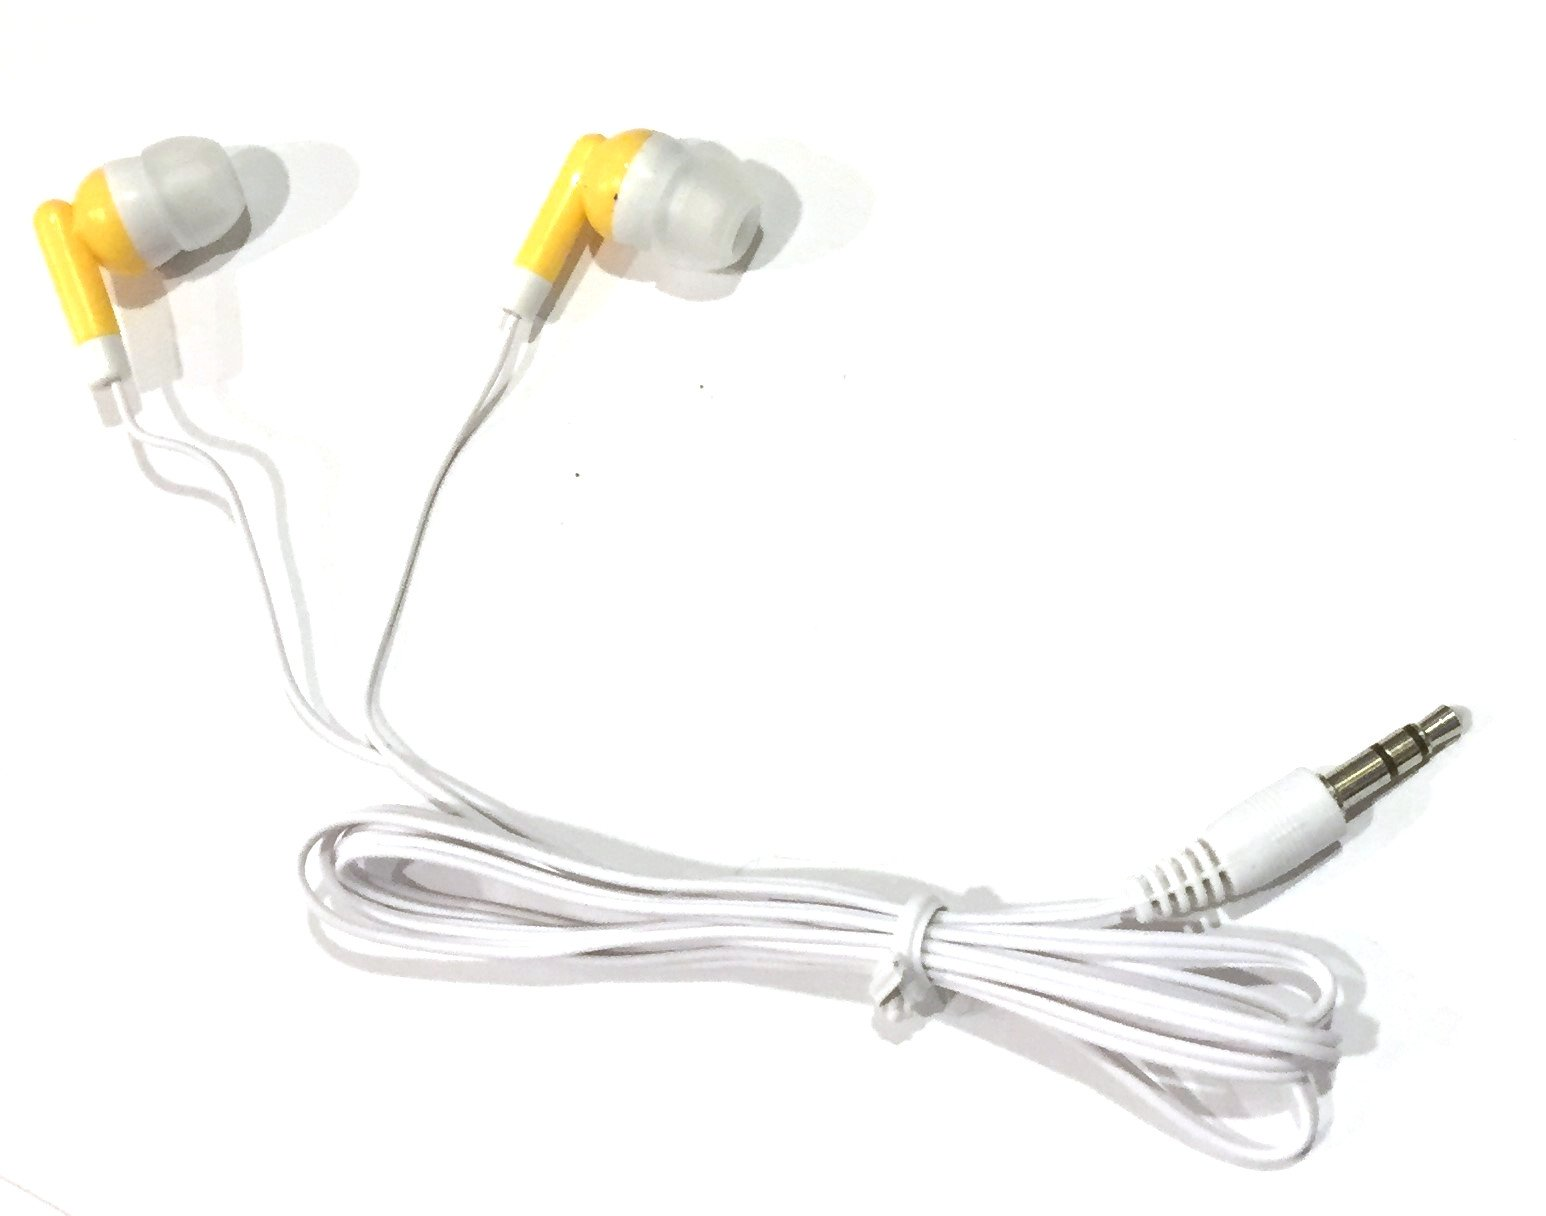 TFD Supplies Wholesale Bulk Earbuds Headphones 50 Pack For Iphone, Android, MP3 Player - Yellow/Gold by TFD Supplies